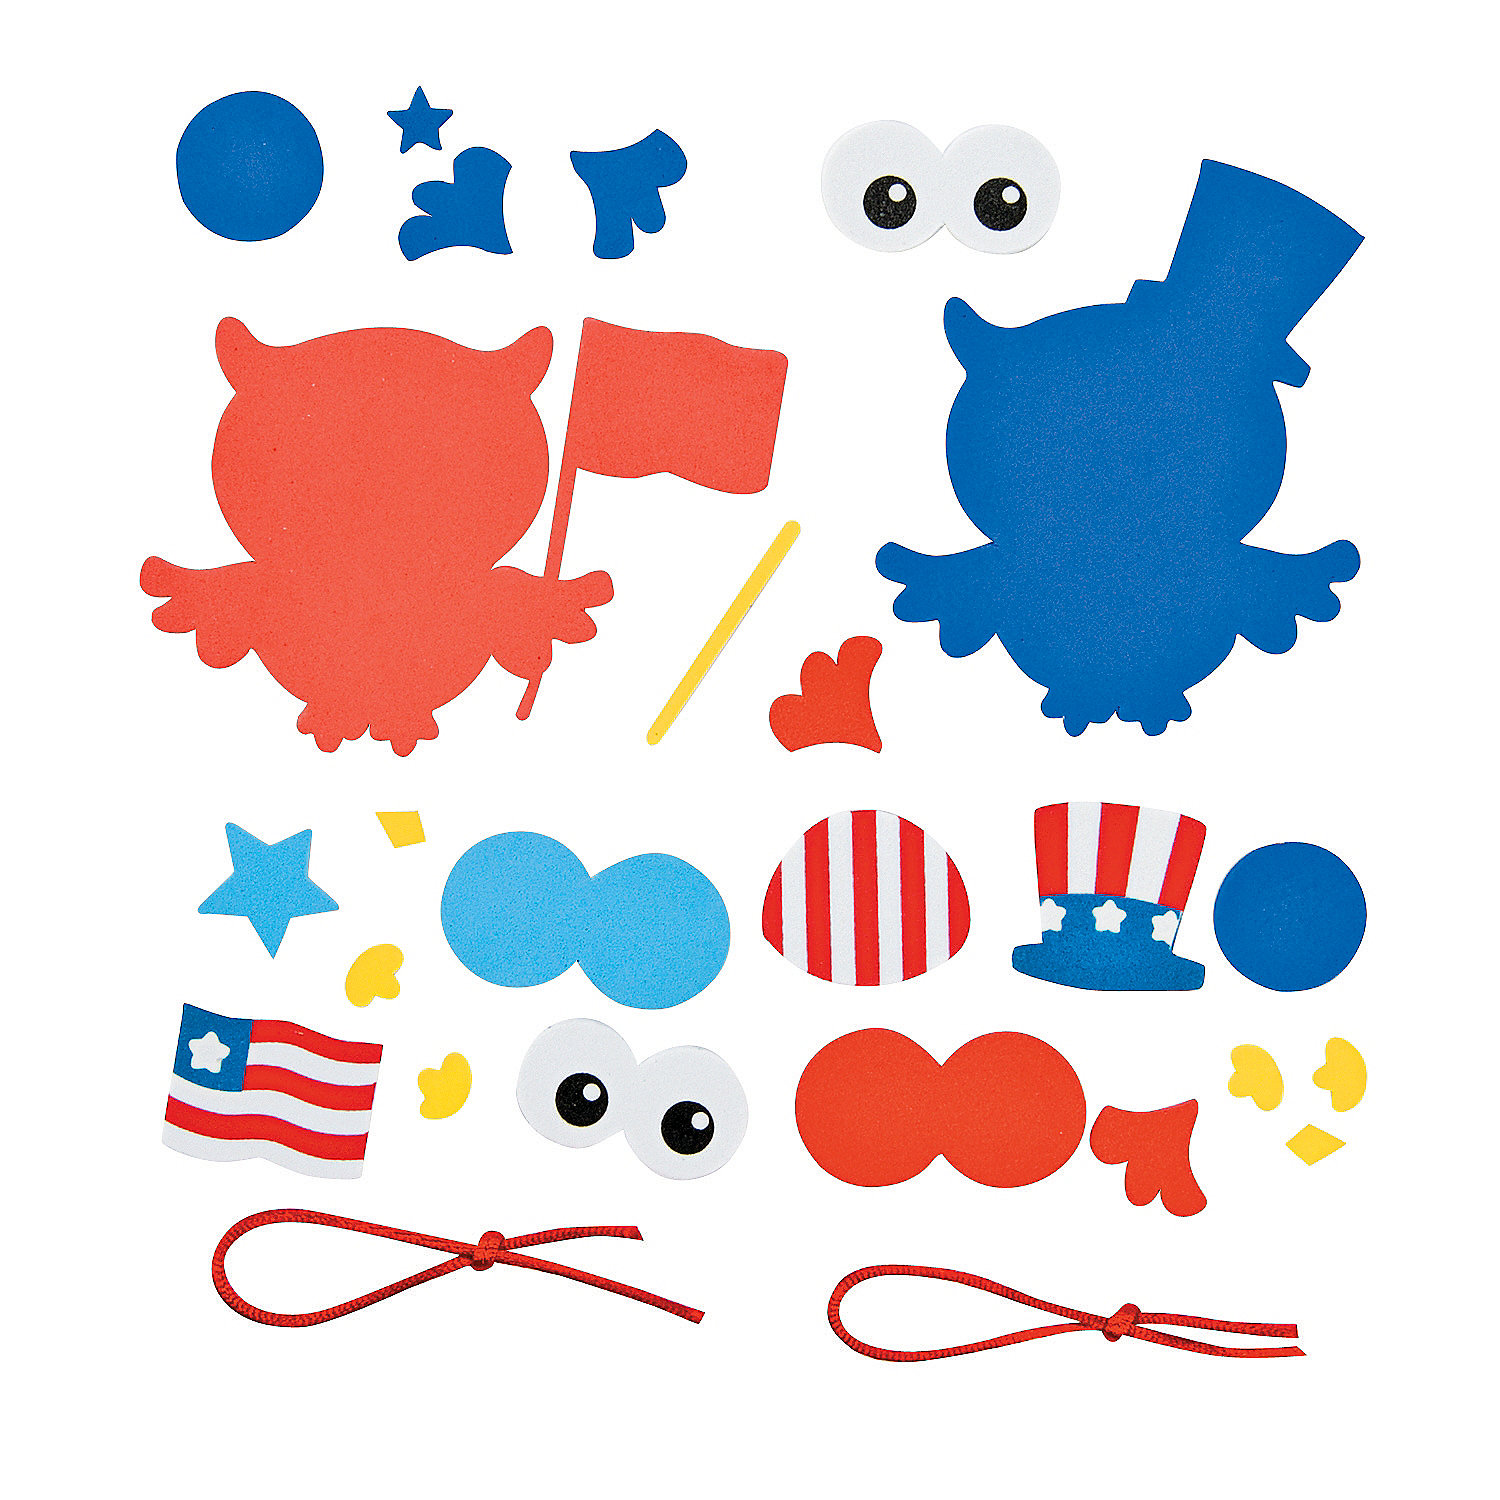 Active Patriotic Games For Kids